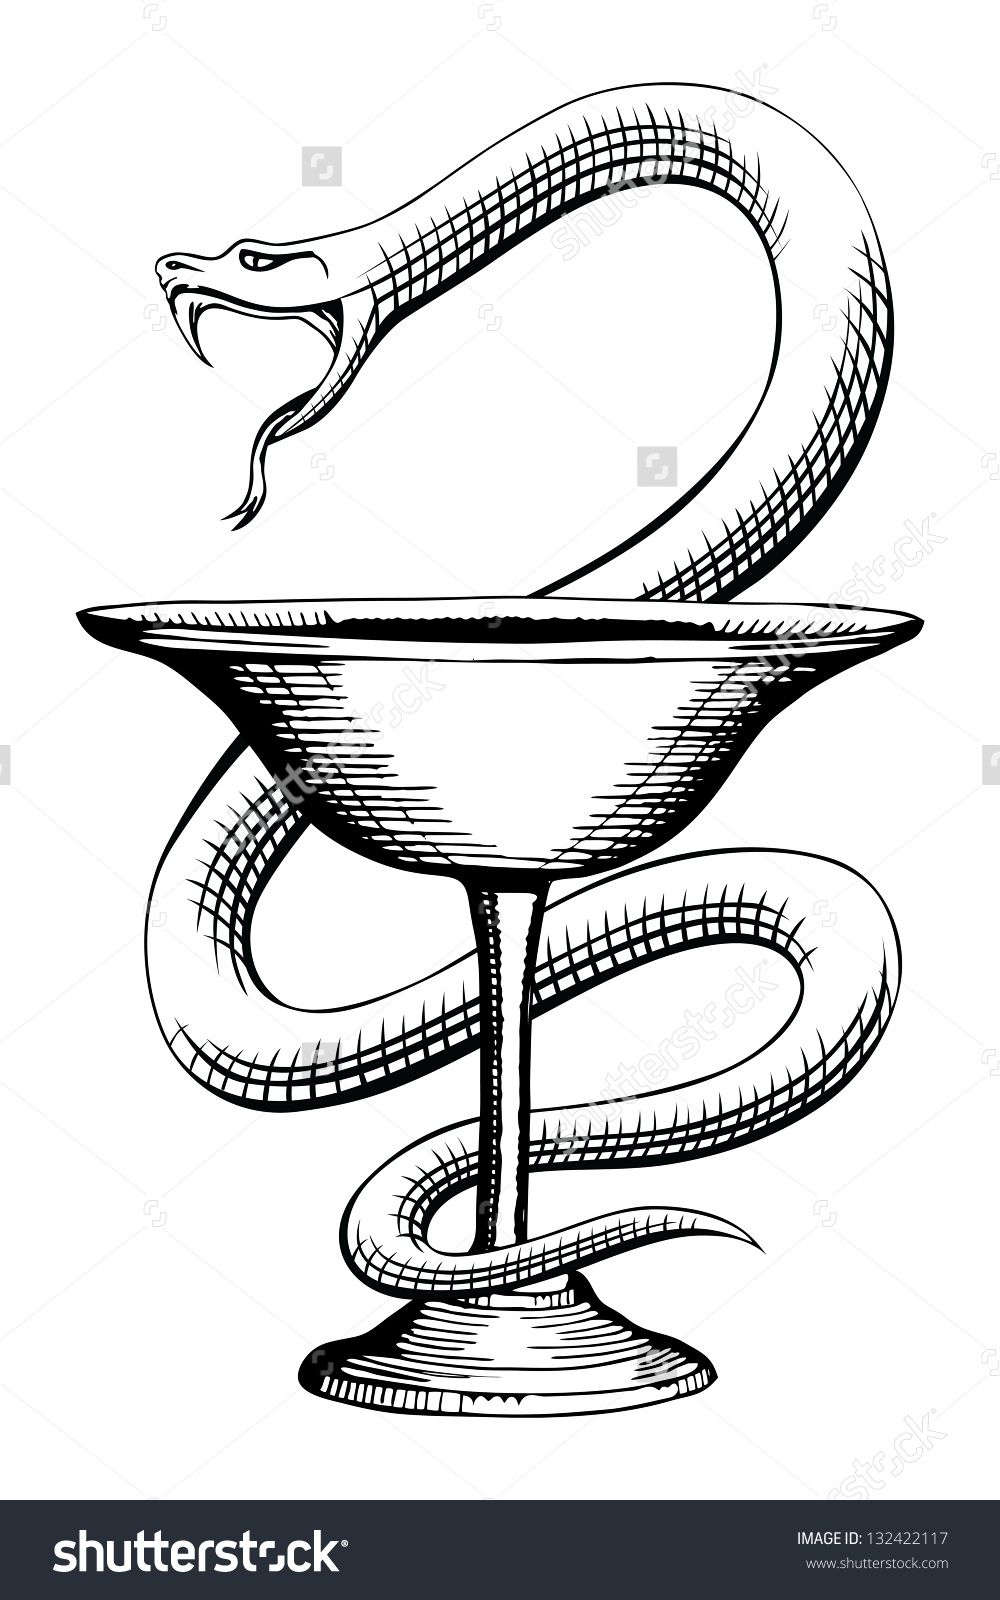 Pharmacy snake and cup medical symbol is a vintage style pharmacy snake and cup medical symbol is a vintage style illustration of the pharmacy symbol design buycottarizona Image collections